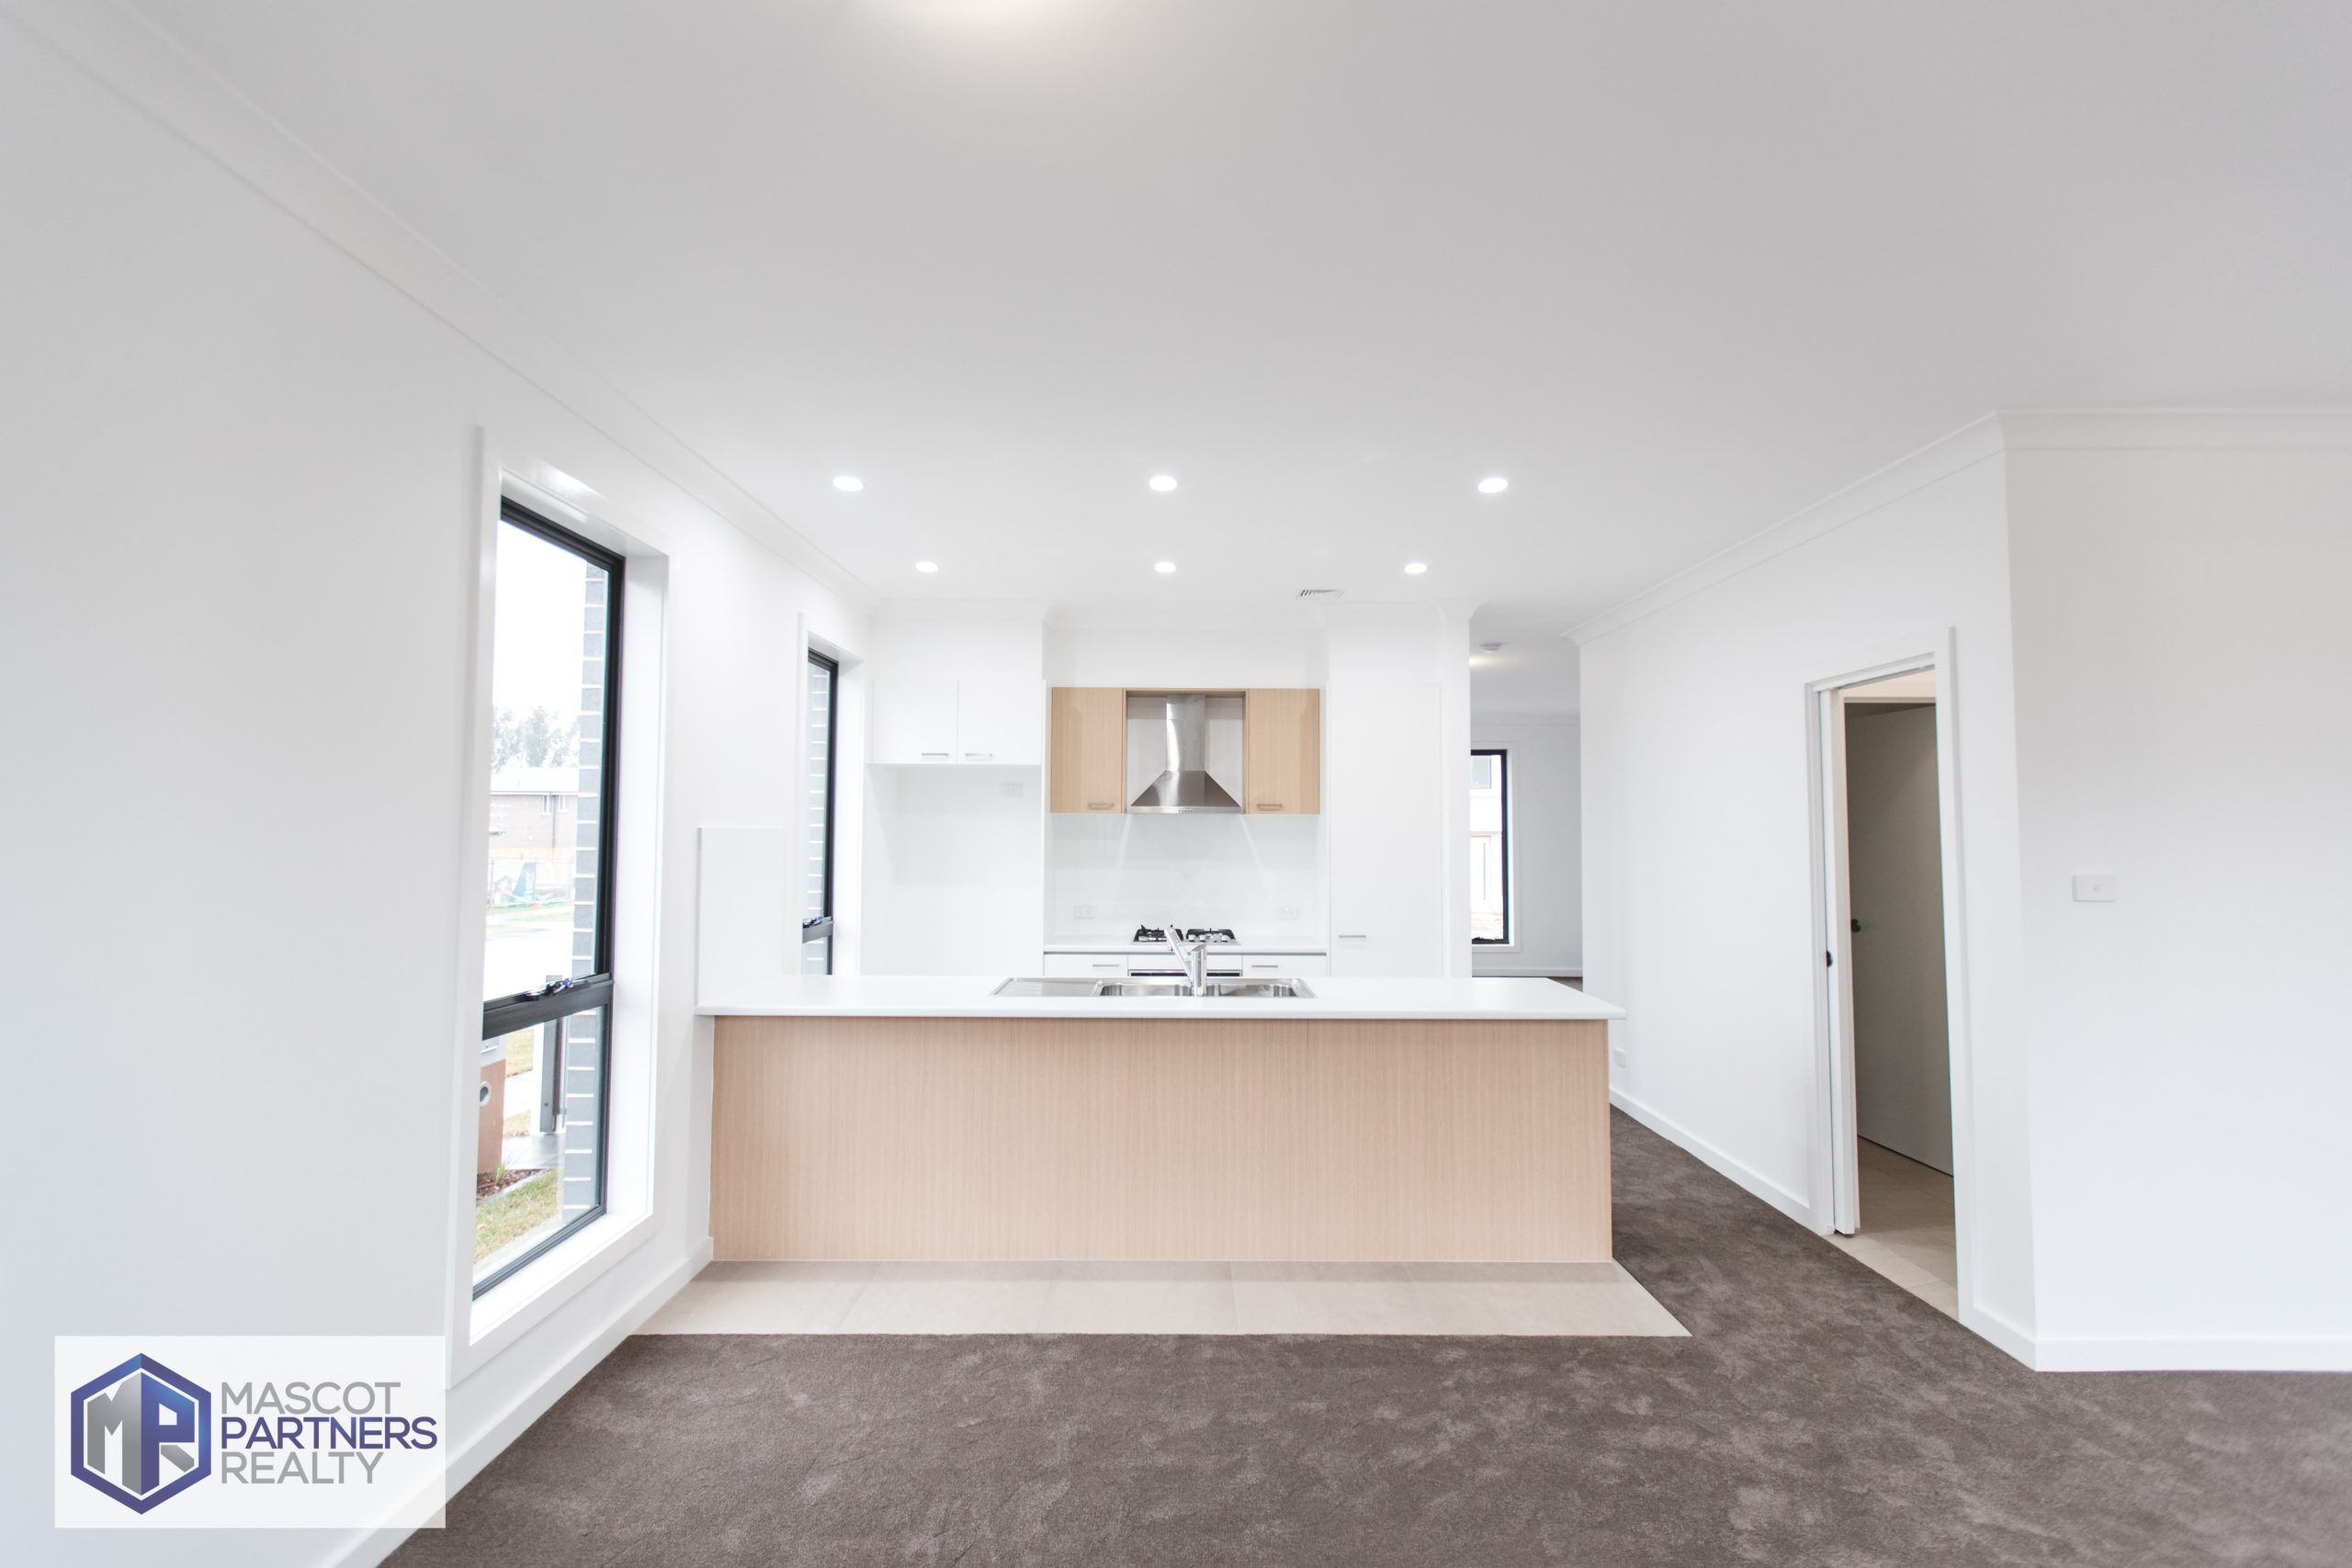 9 Scion Street, Austral NSW 2179 (LEASED)